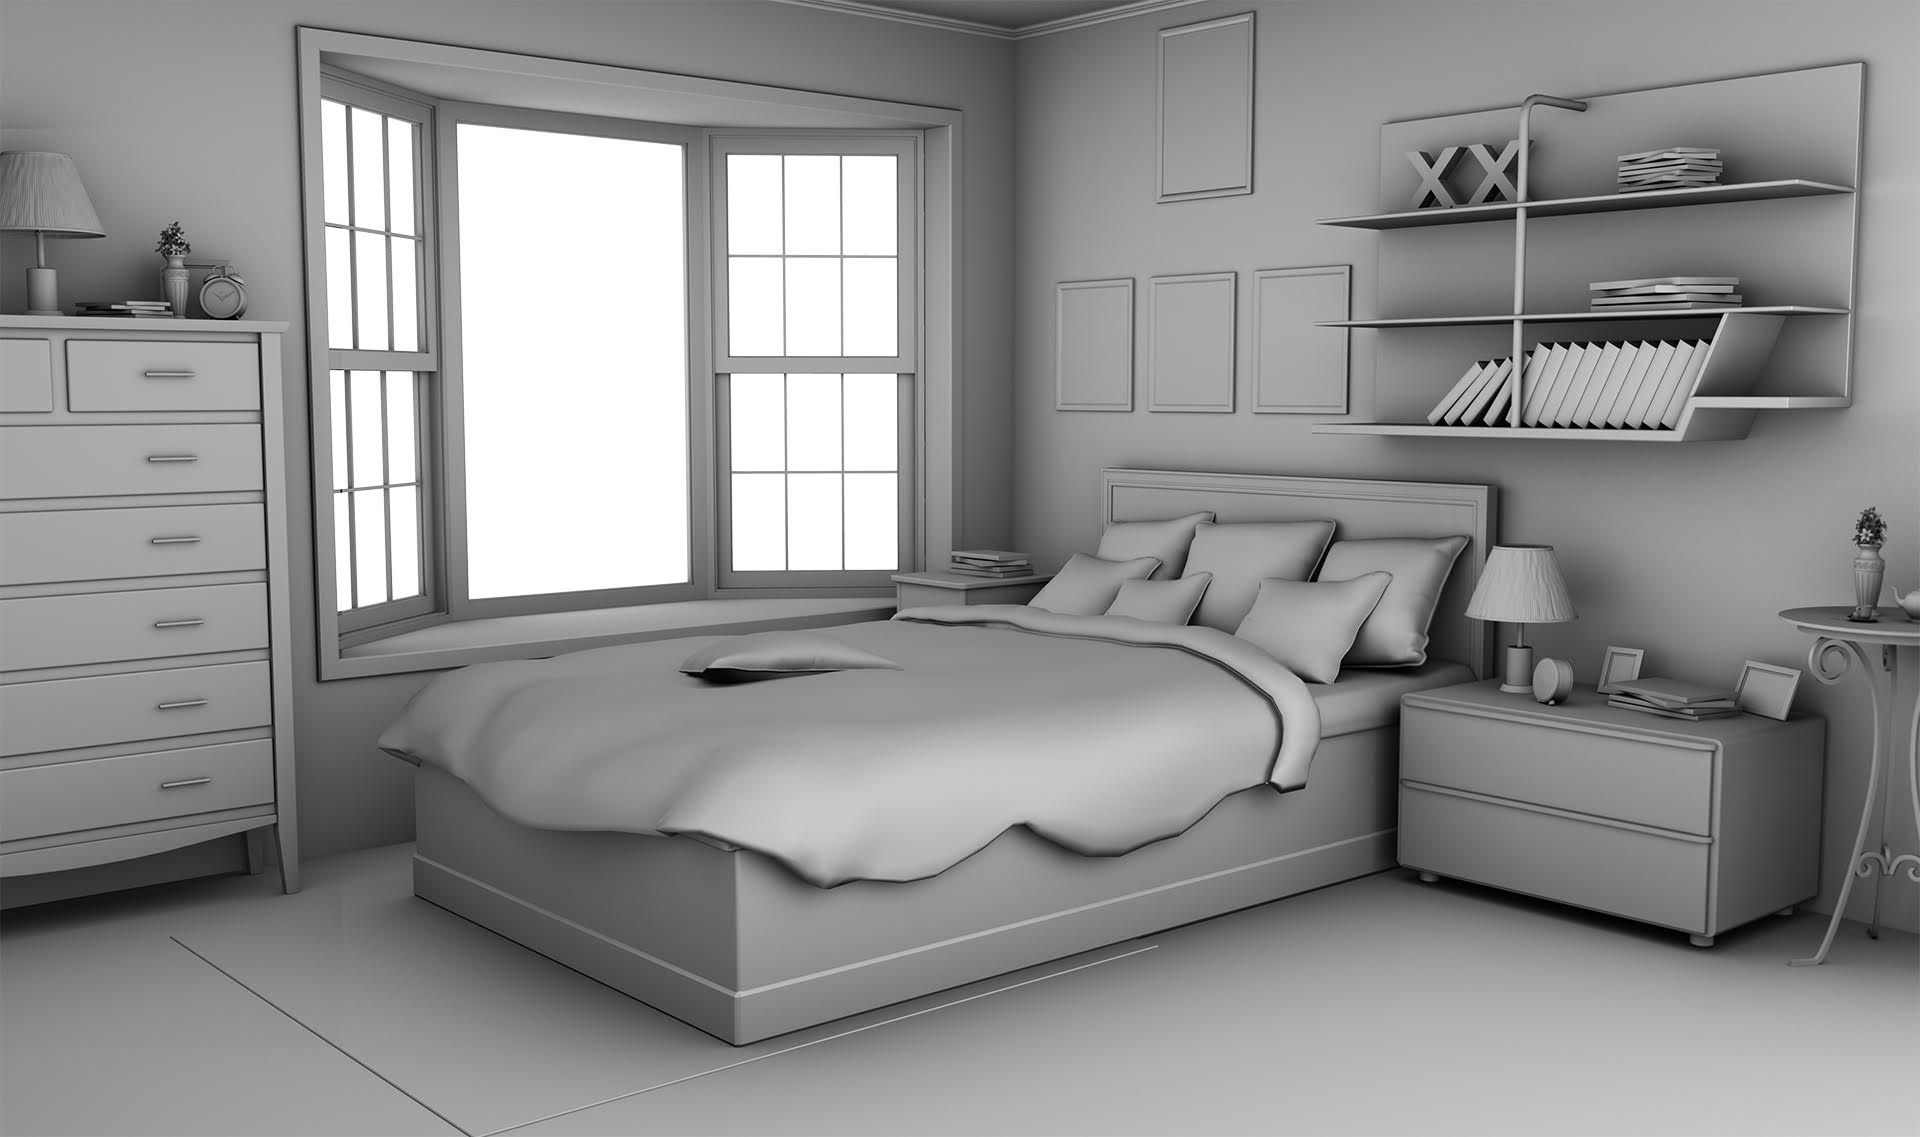 Bedroom White Background Int Demi Nice Bedroom Day Episode Backgrounds